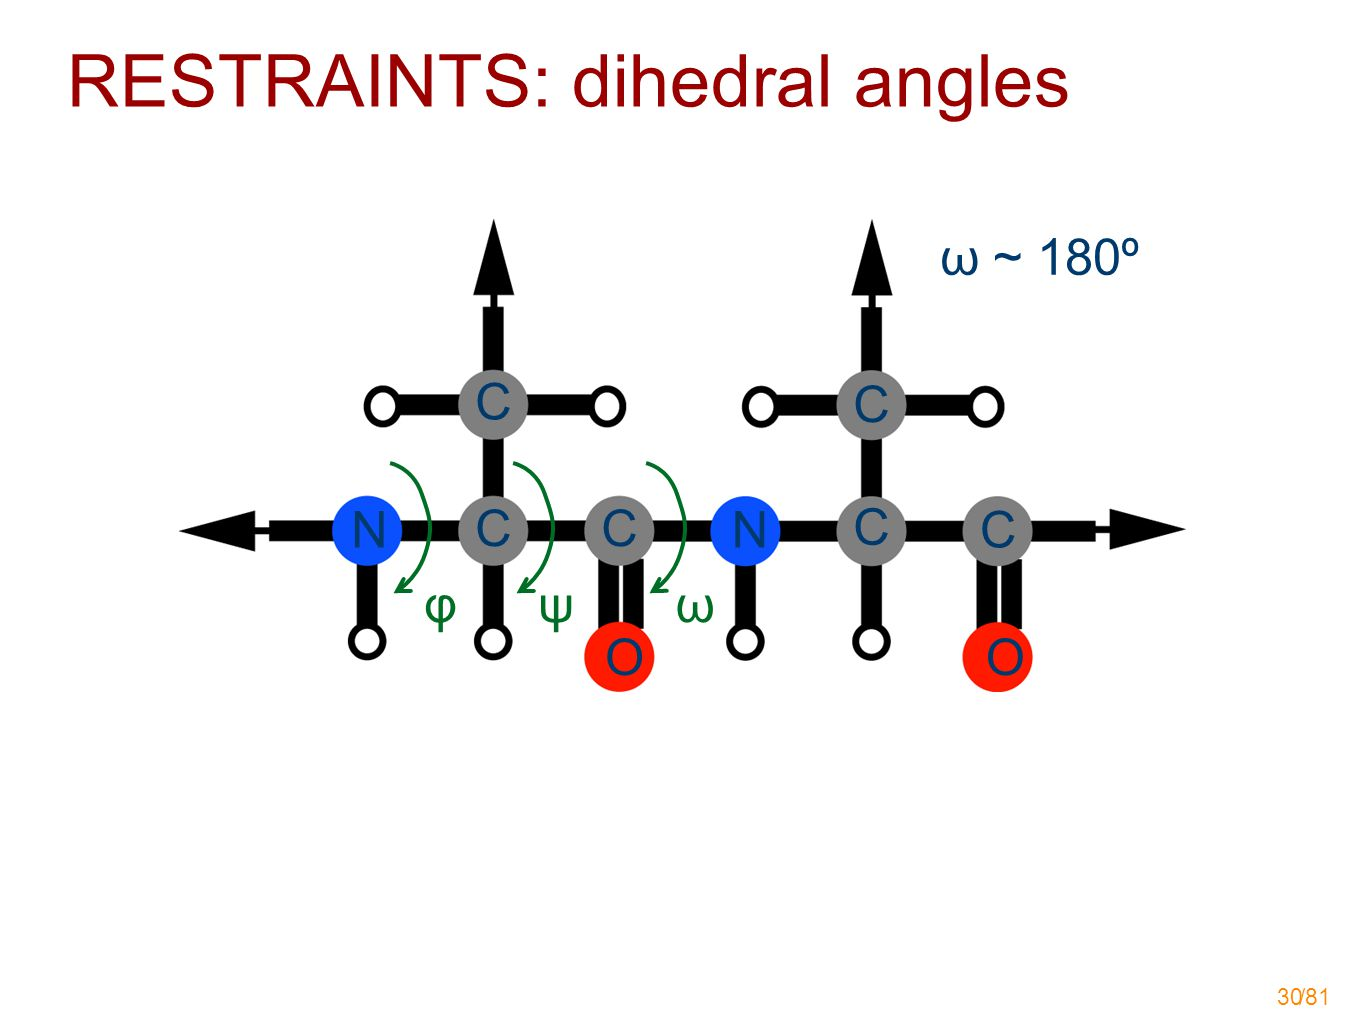 /81 30 φ ω ~ 180º NN CC C C C C OO ψω RESTRAINTS: dihedral angles